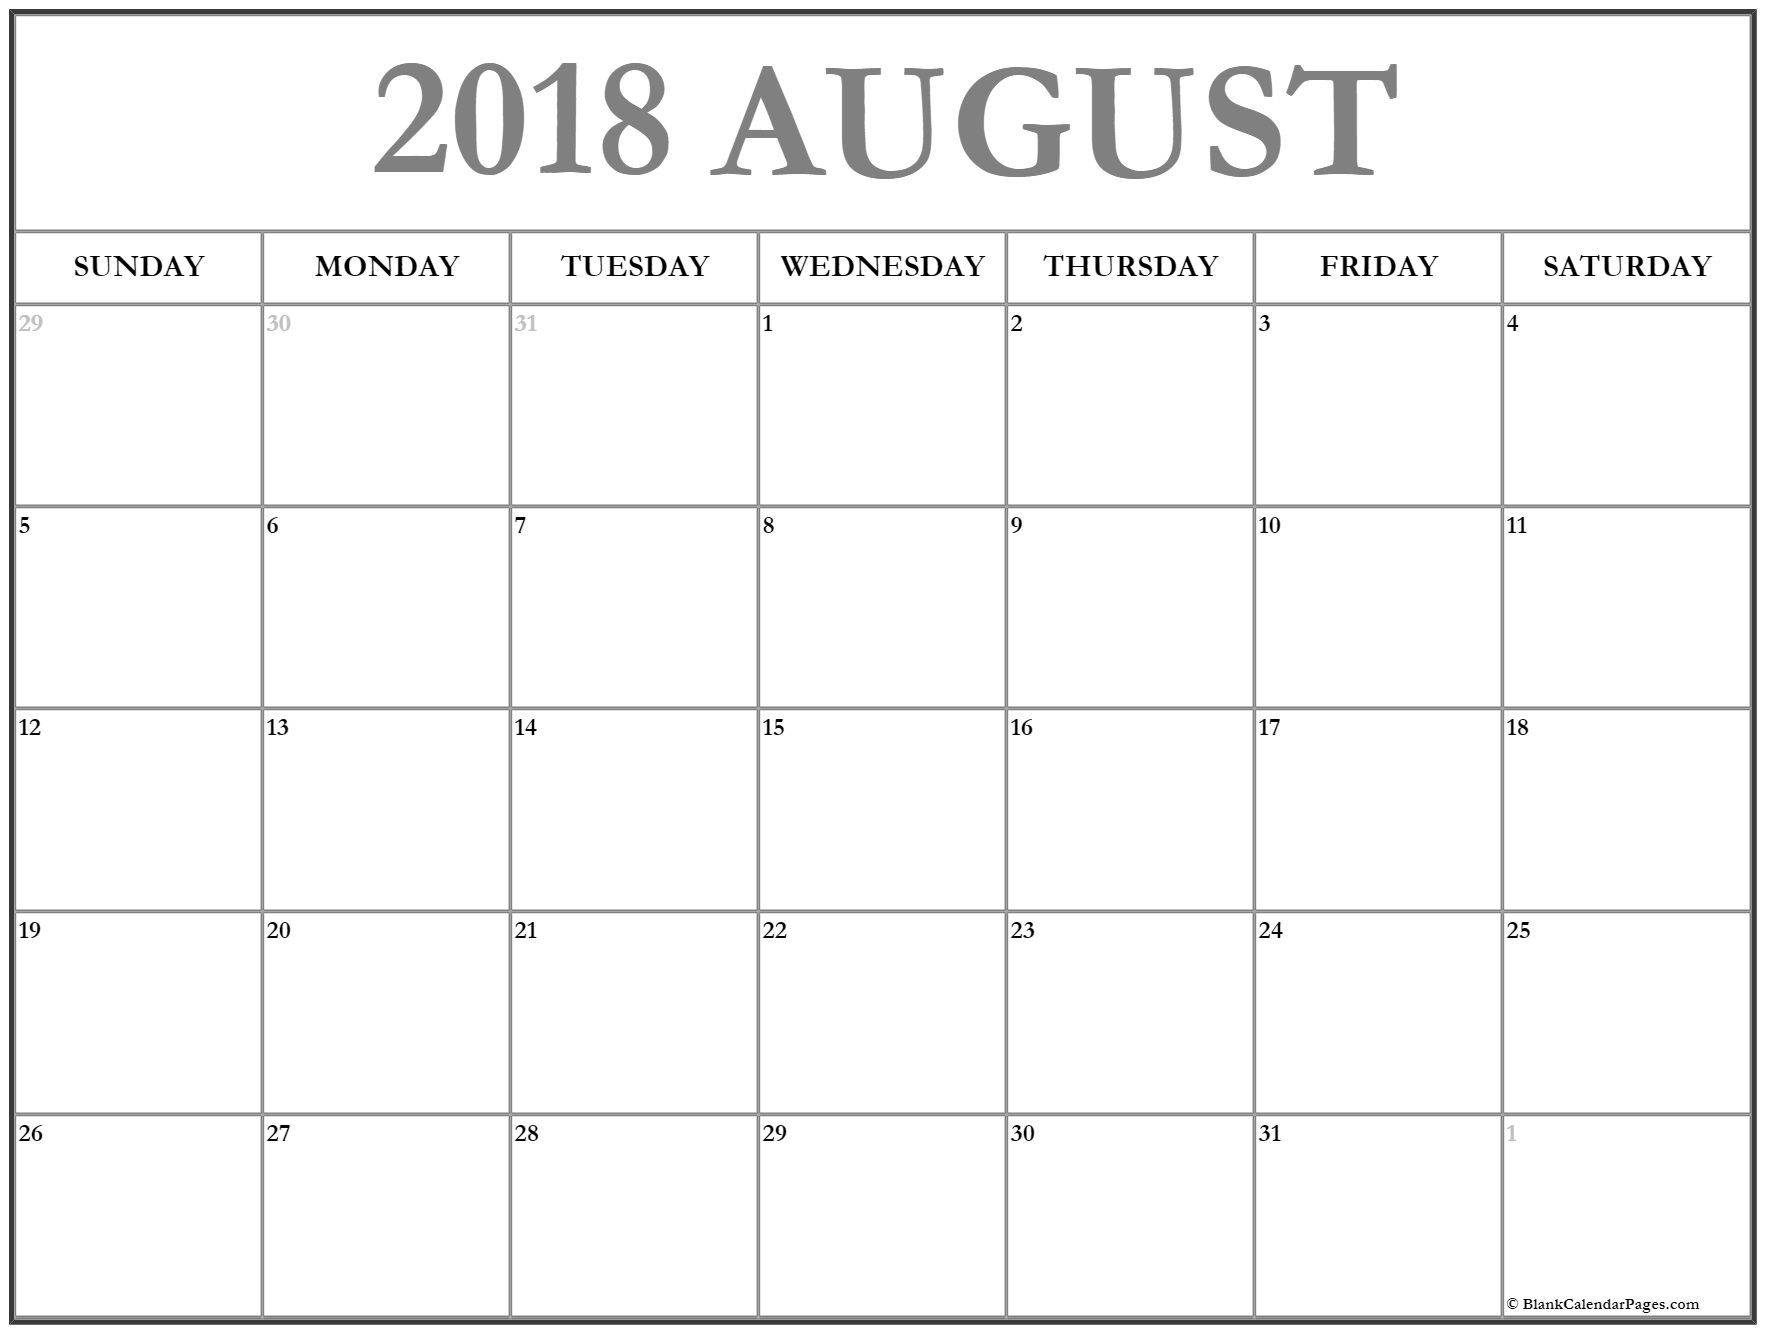 august 2018 calendar 51 calendar templates of 2018 calendars Calendar August 2018 Uk List erdferdf